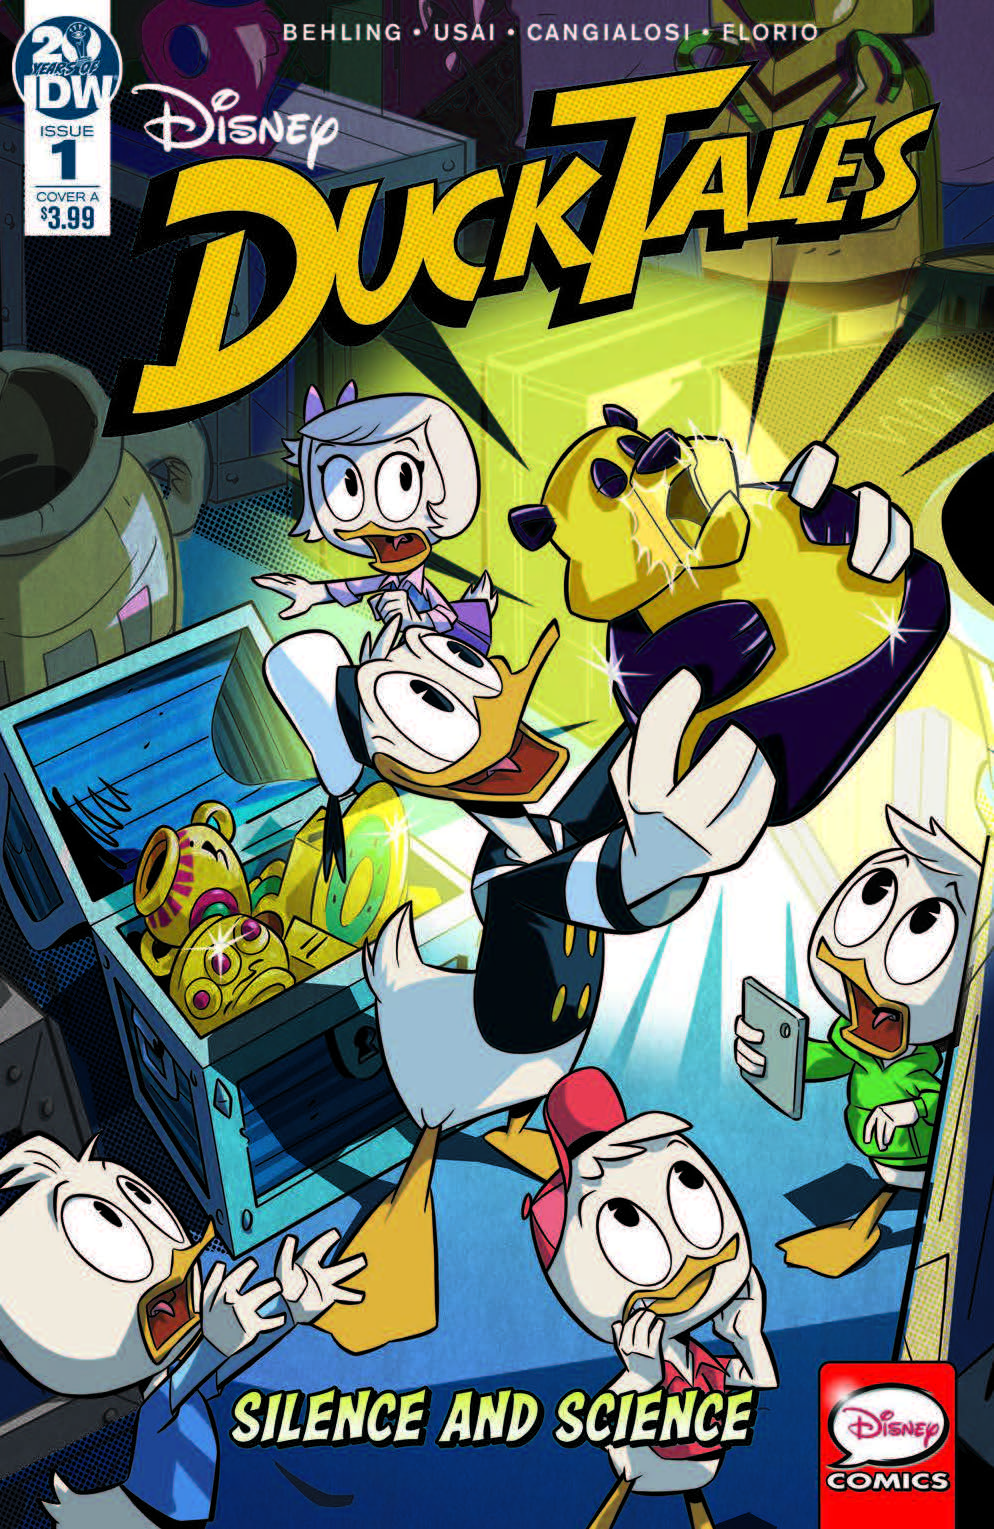 Ducktales: Silence And Science #1 Review